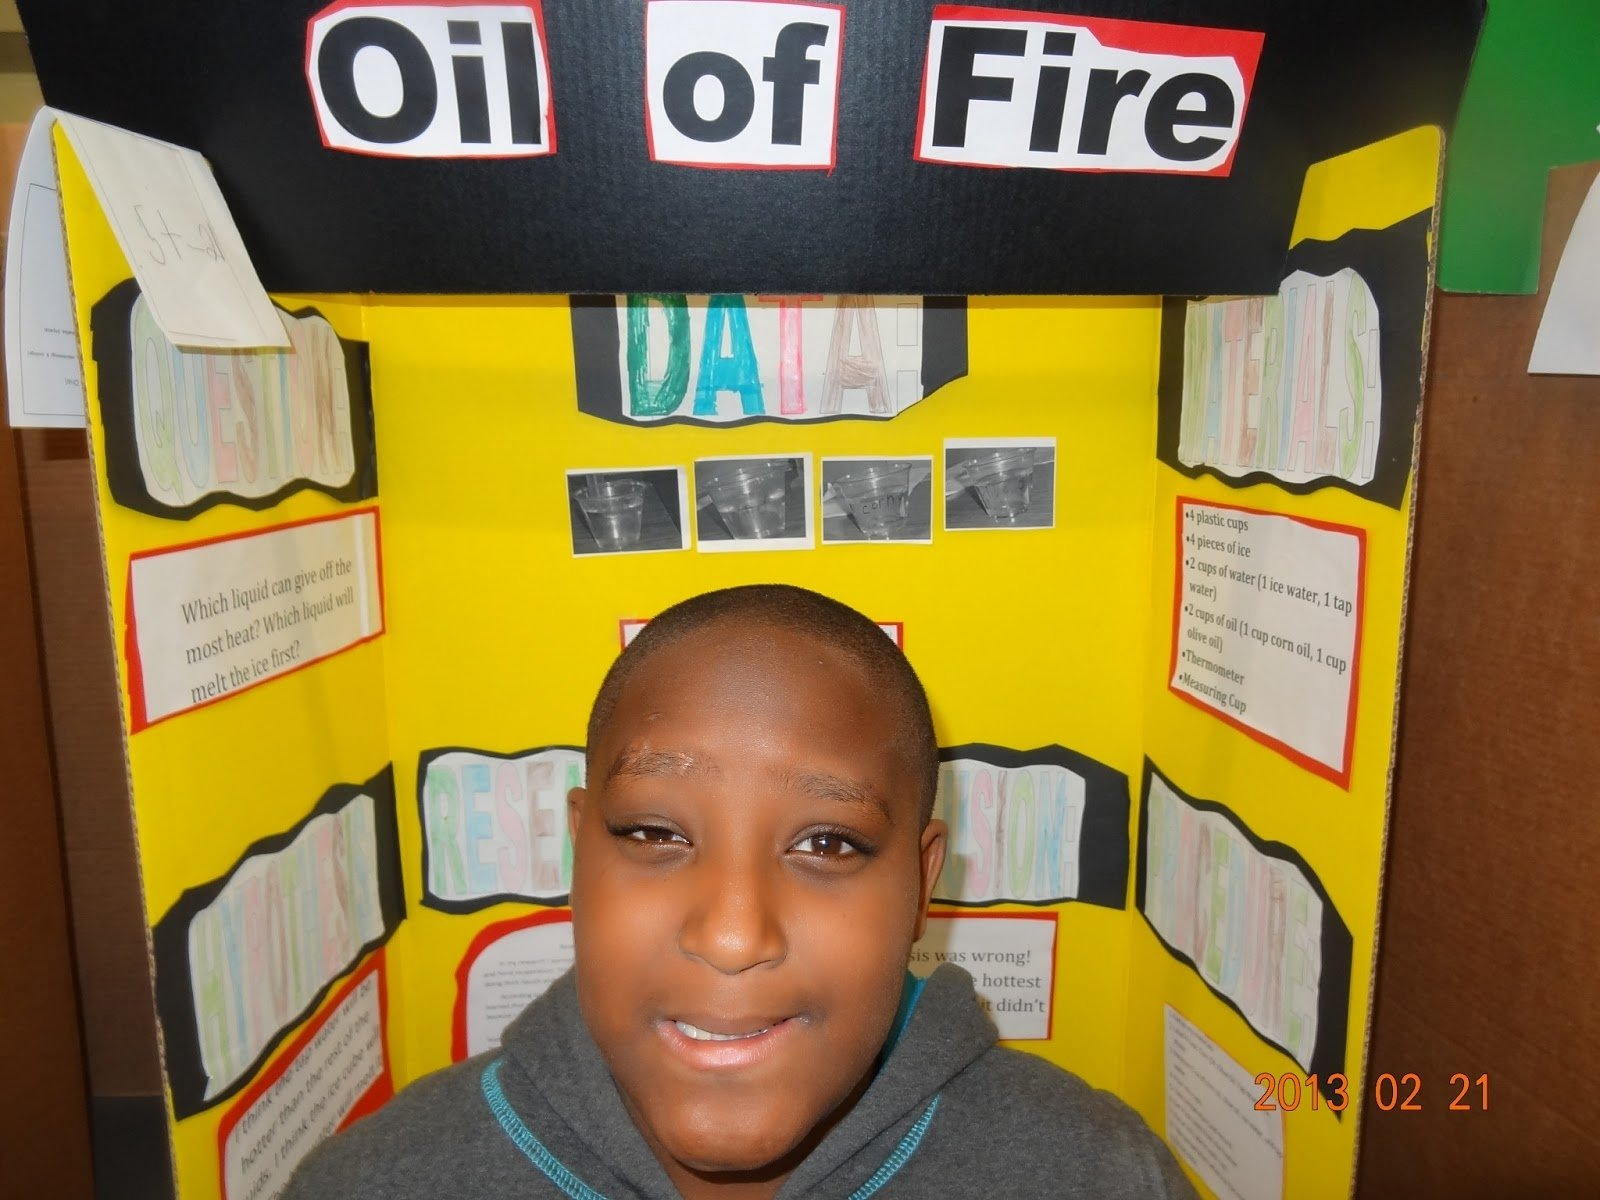 10 Most Recommended Fifth Grade Science Fair Ideas nokw woodwork 5th grade 8th grade science fair projects info 38 2020